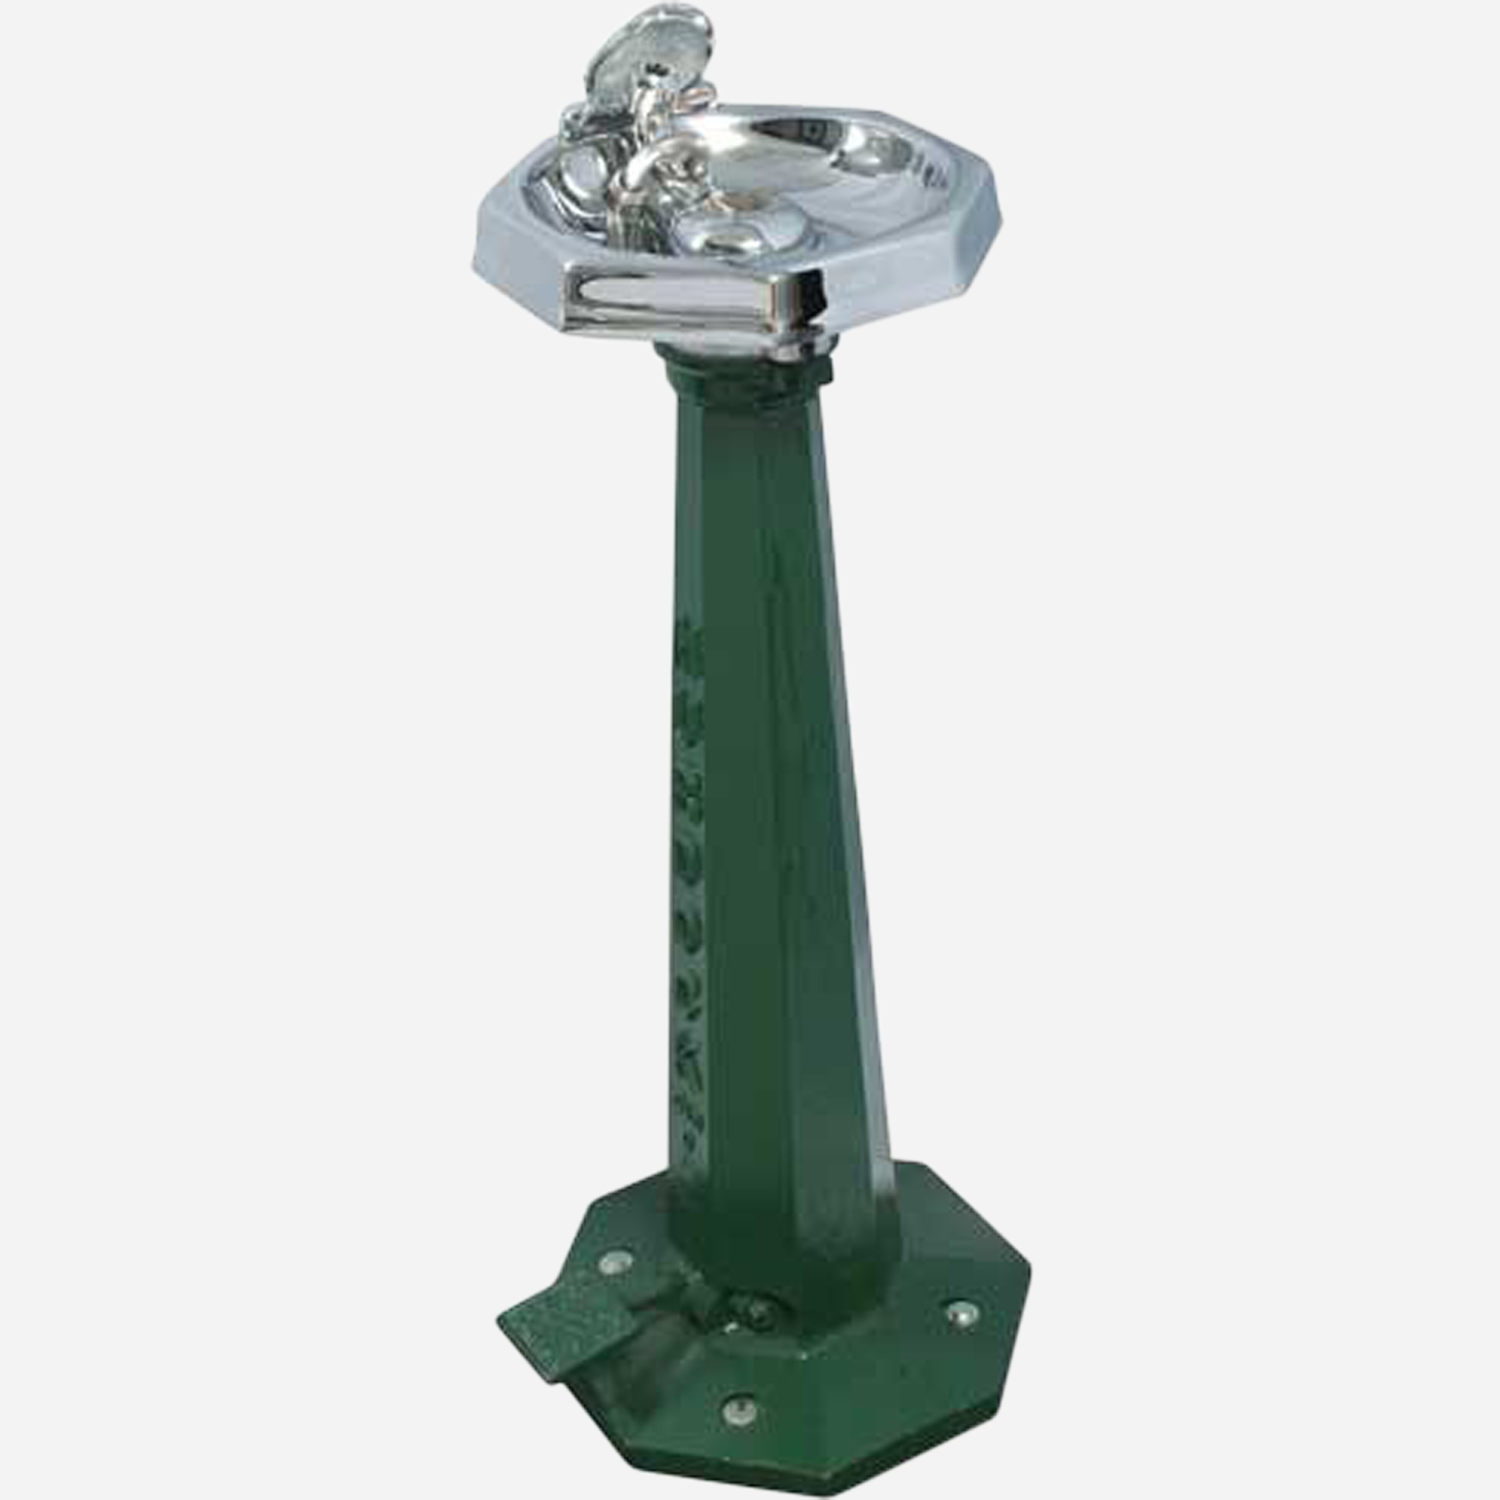 Retro Style Cast Iron Fountains